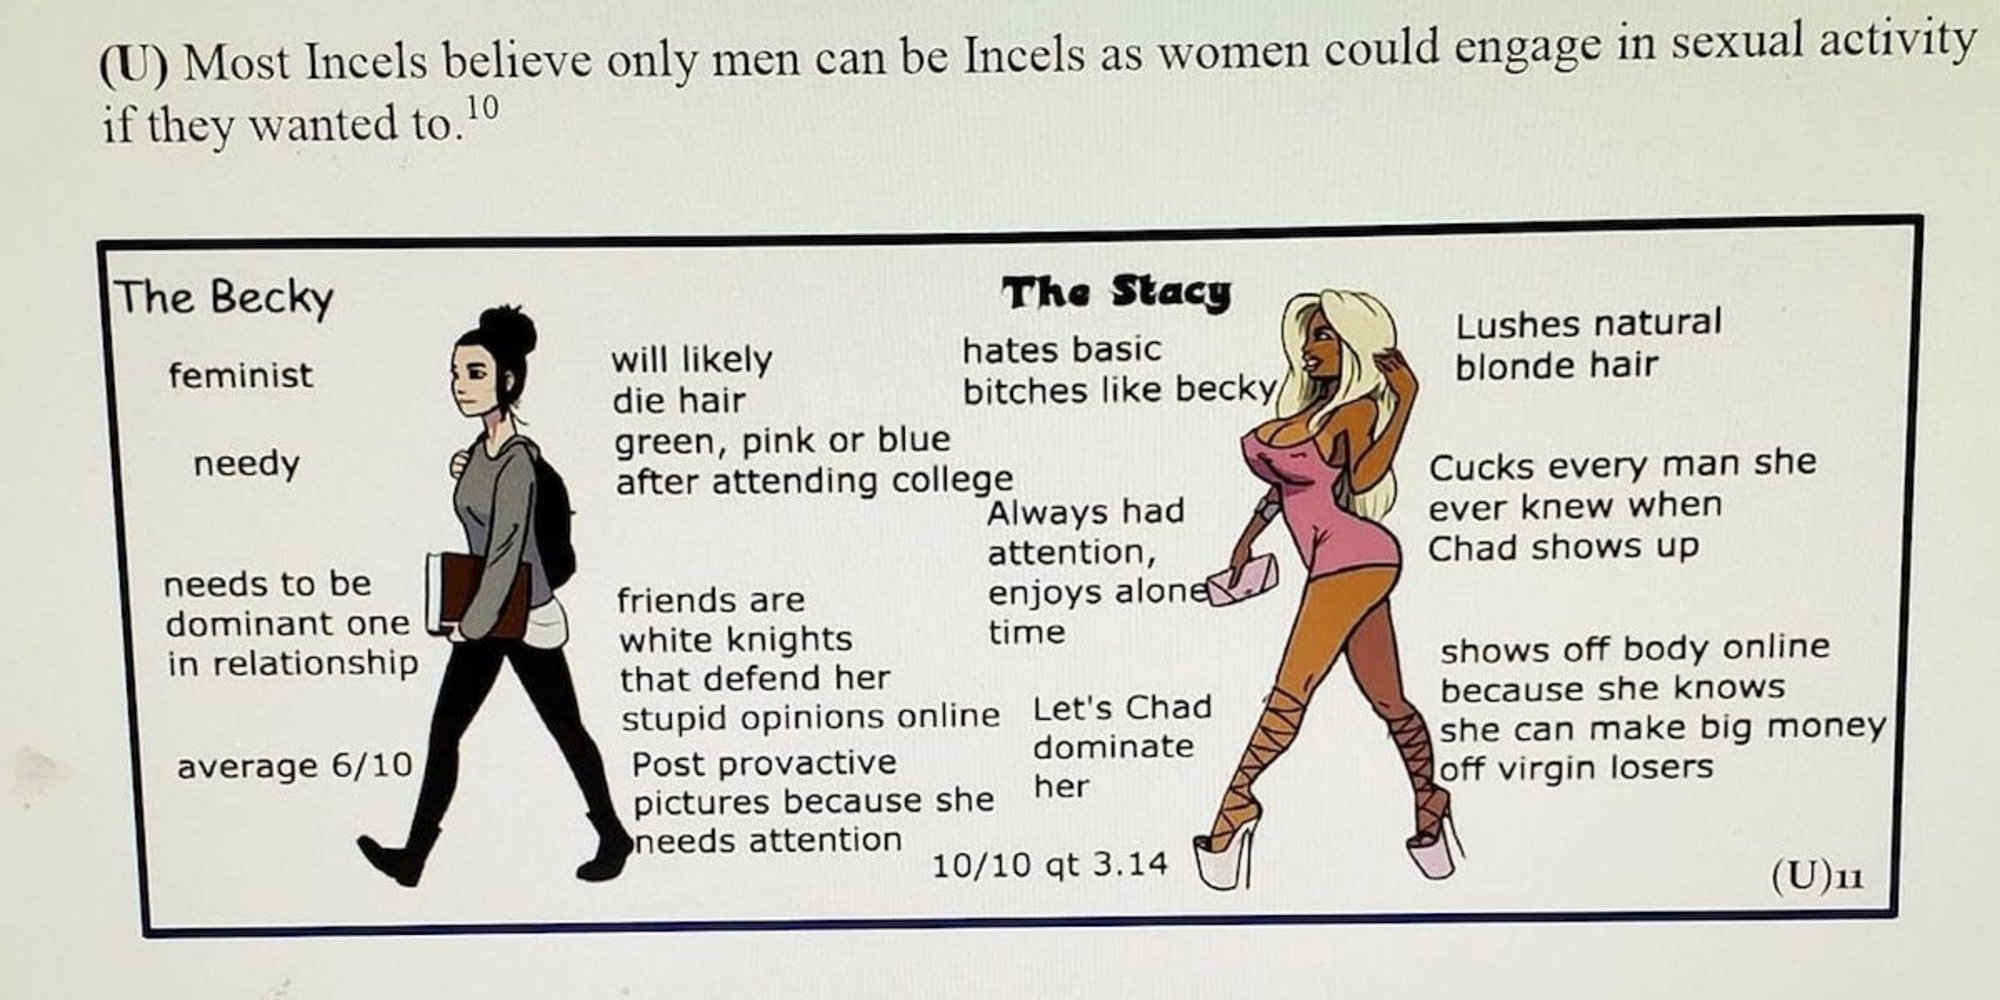 Air Force Joint Base Andrews Issues Threat Brief On Incels - Task & Purpose